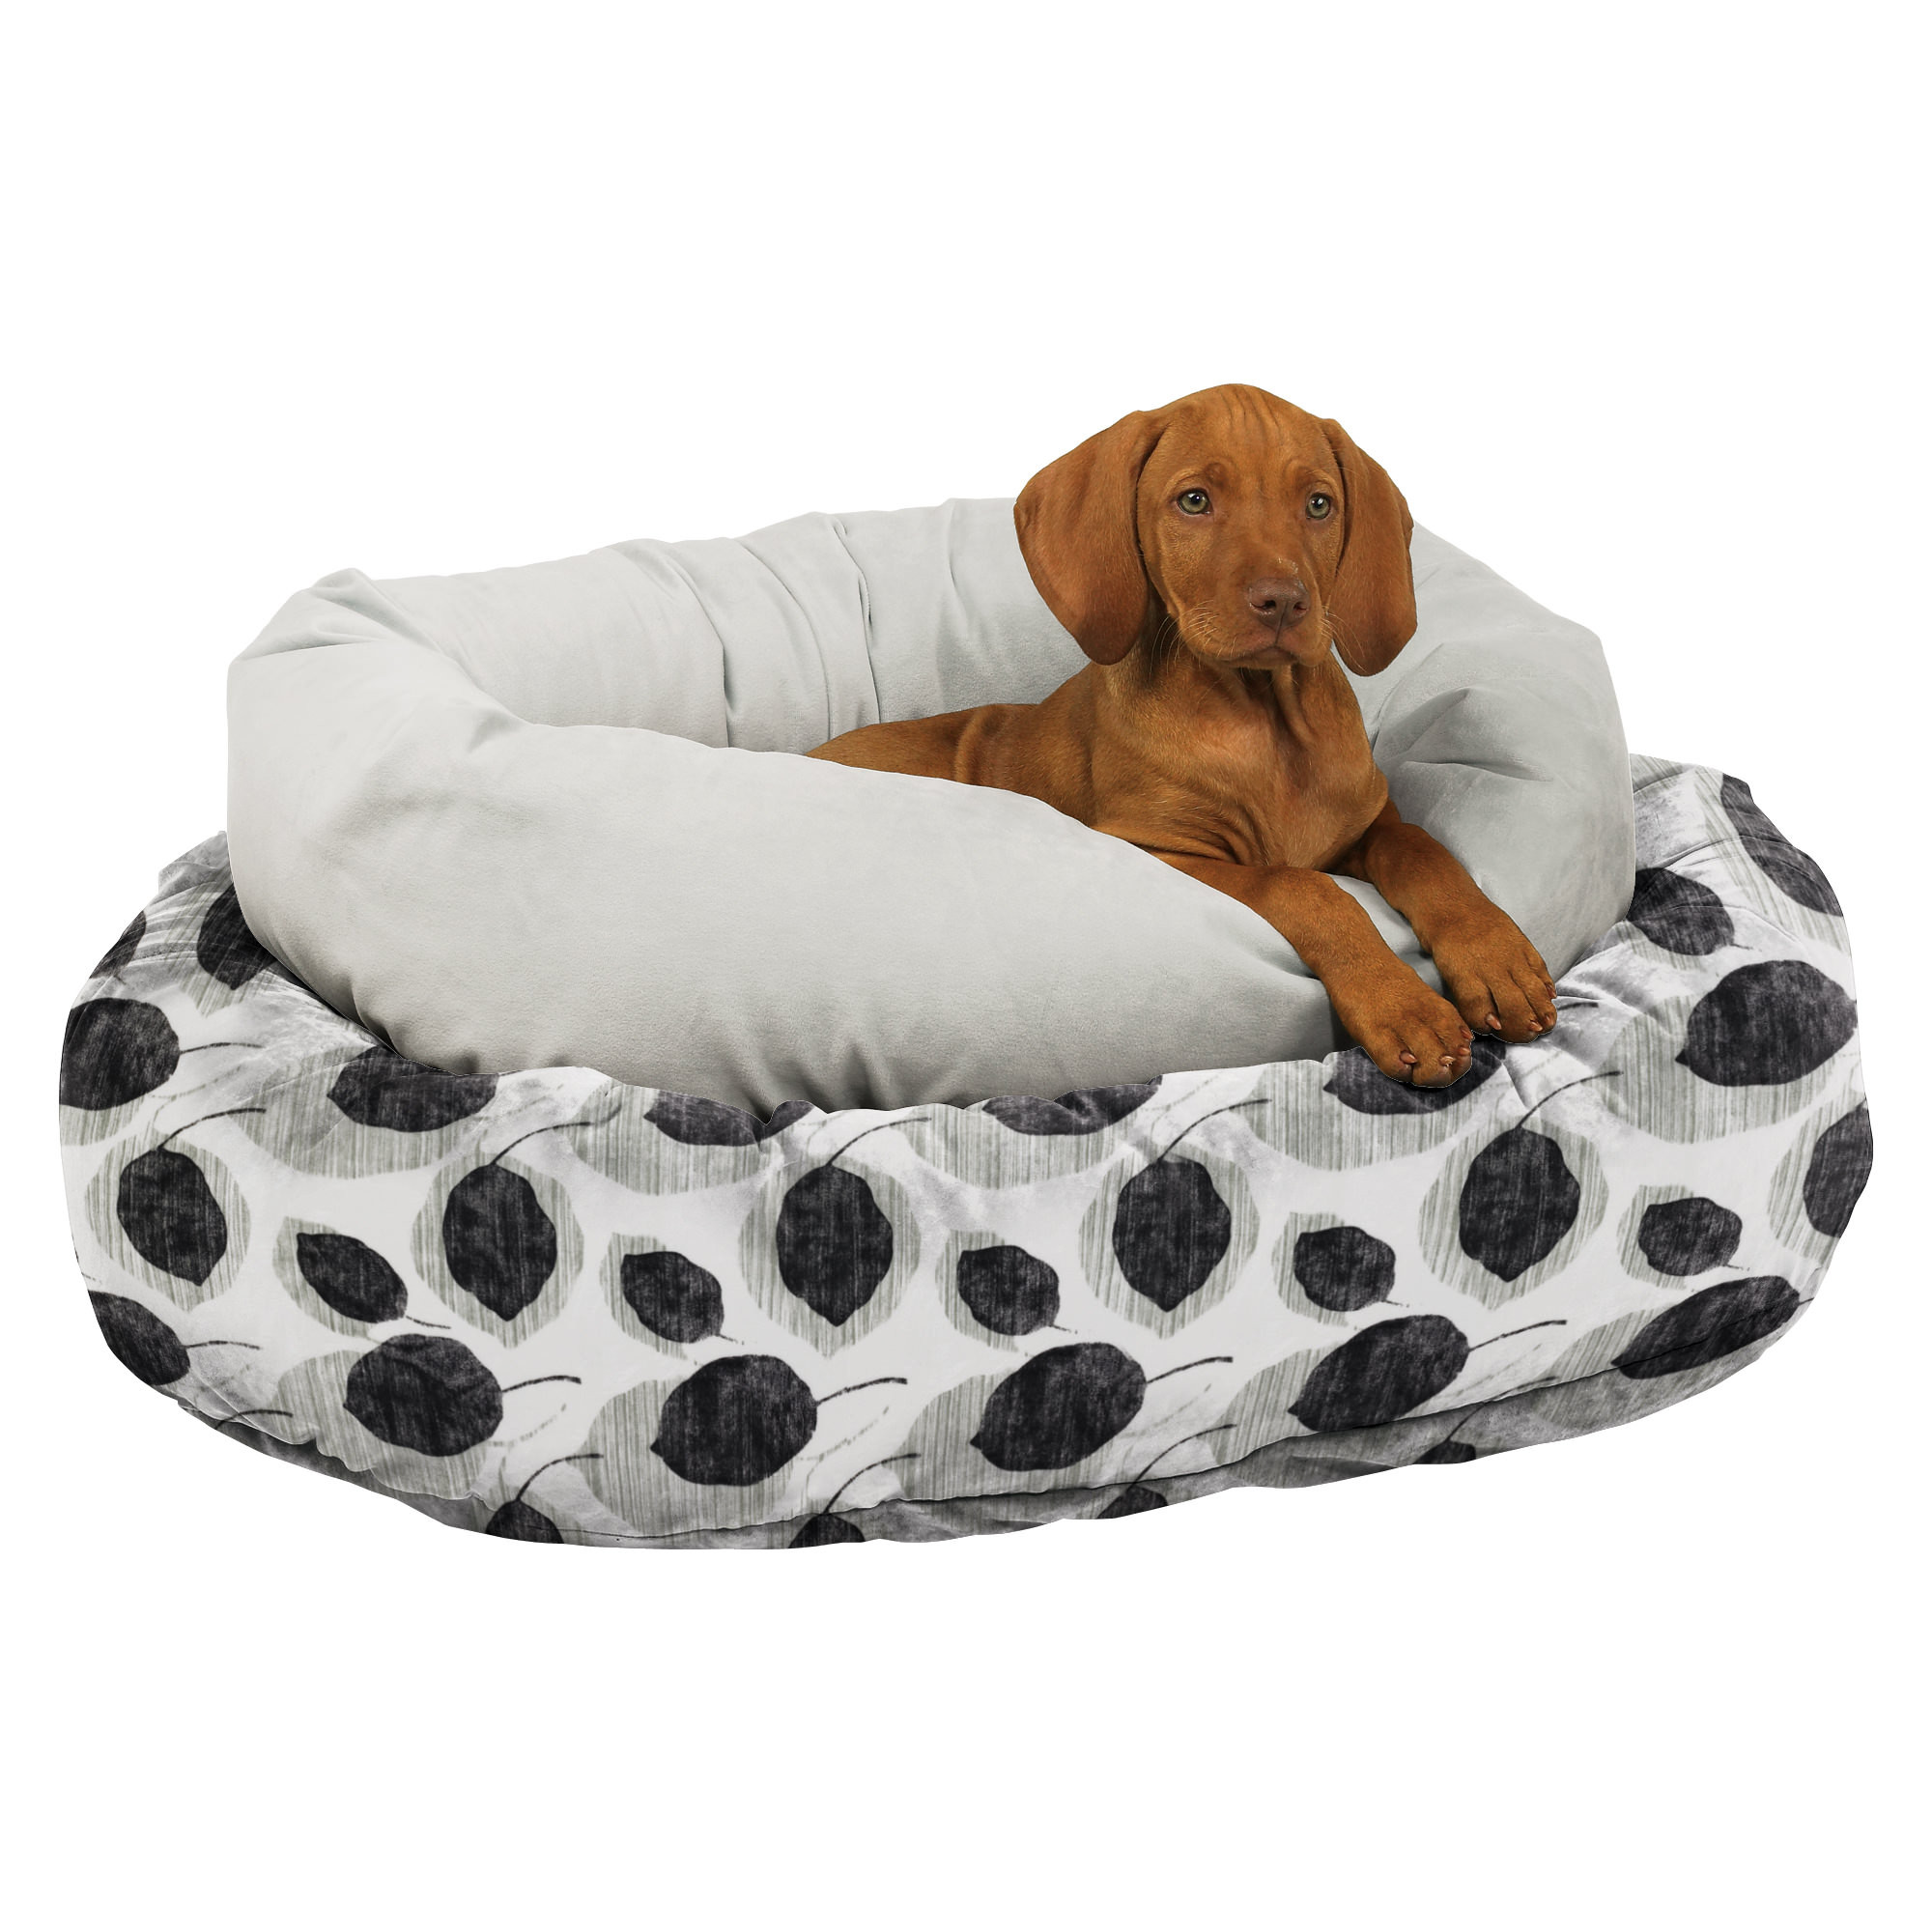 bowser dog beds bowsers platinum series microvelvet donut dog bed  - bowsers diamond collection donut pet bed